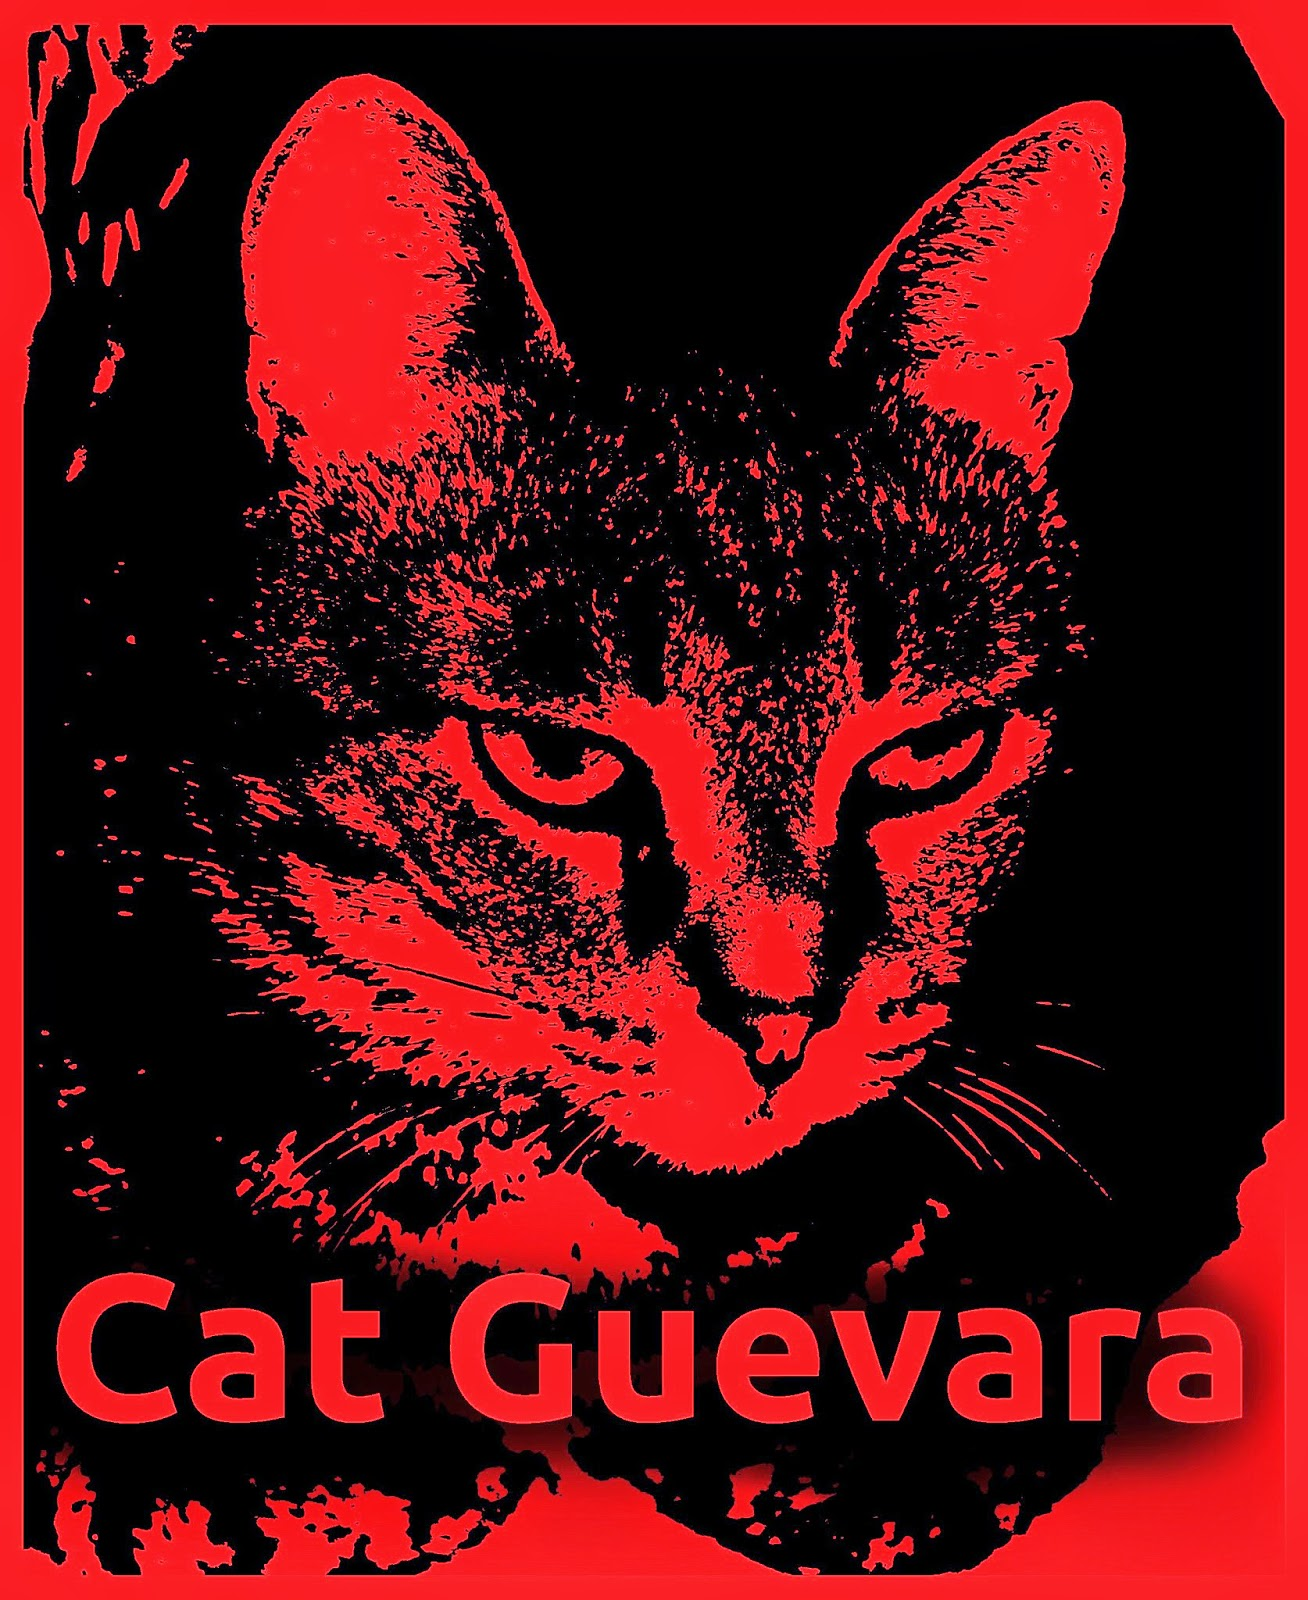 Cat artwork of airbrushed cat guevara